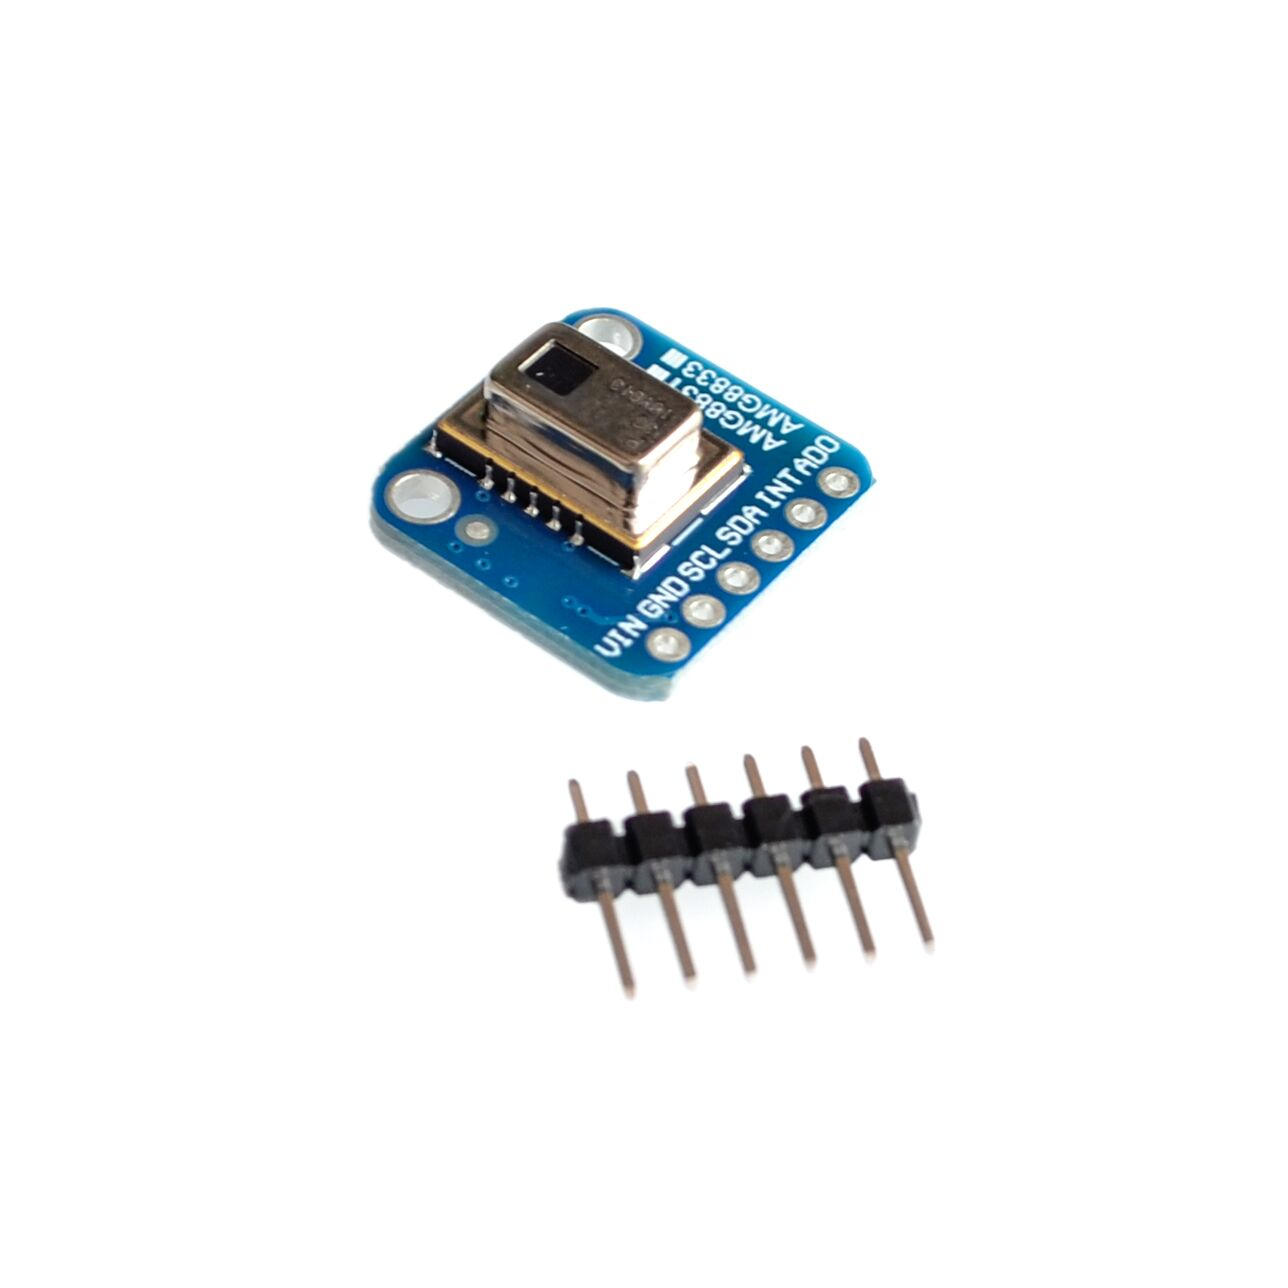 AMG8833 IR 8*8 Thermal Imager Array Temperature Sensor Module 8x8 Infrared Camera SensorAMG8833 IR 8*8 Thermal Imager Array Temperature Sensor Module 8x8 Infrared Camera Sensor